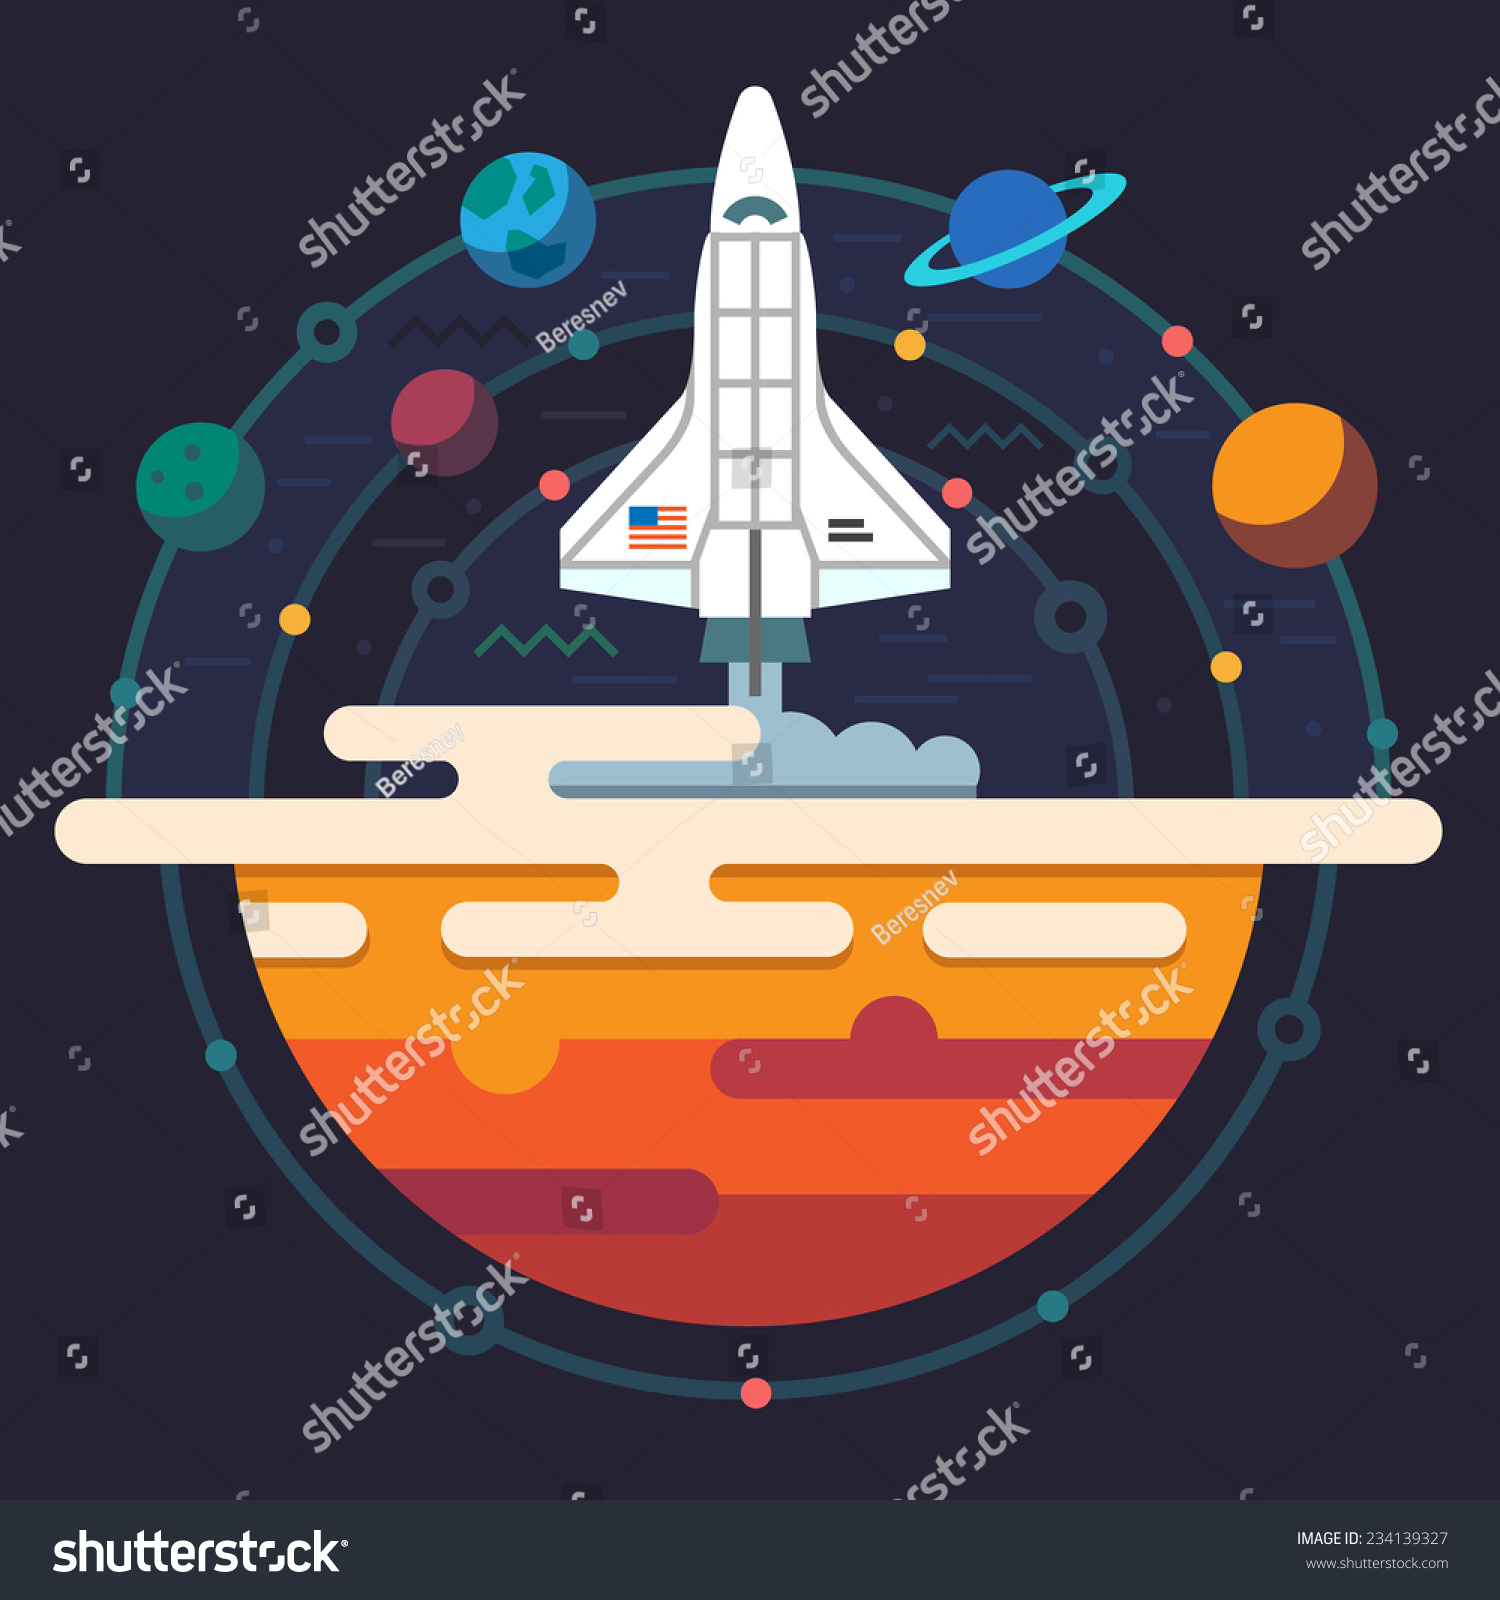 how to find vector space